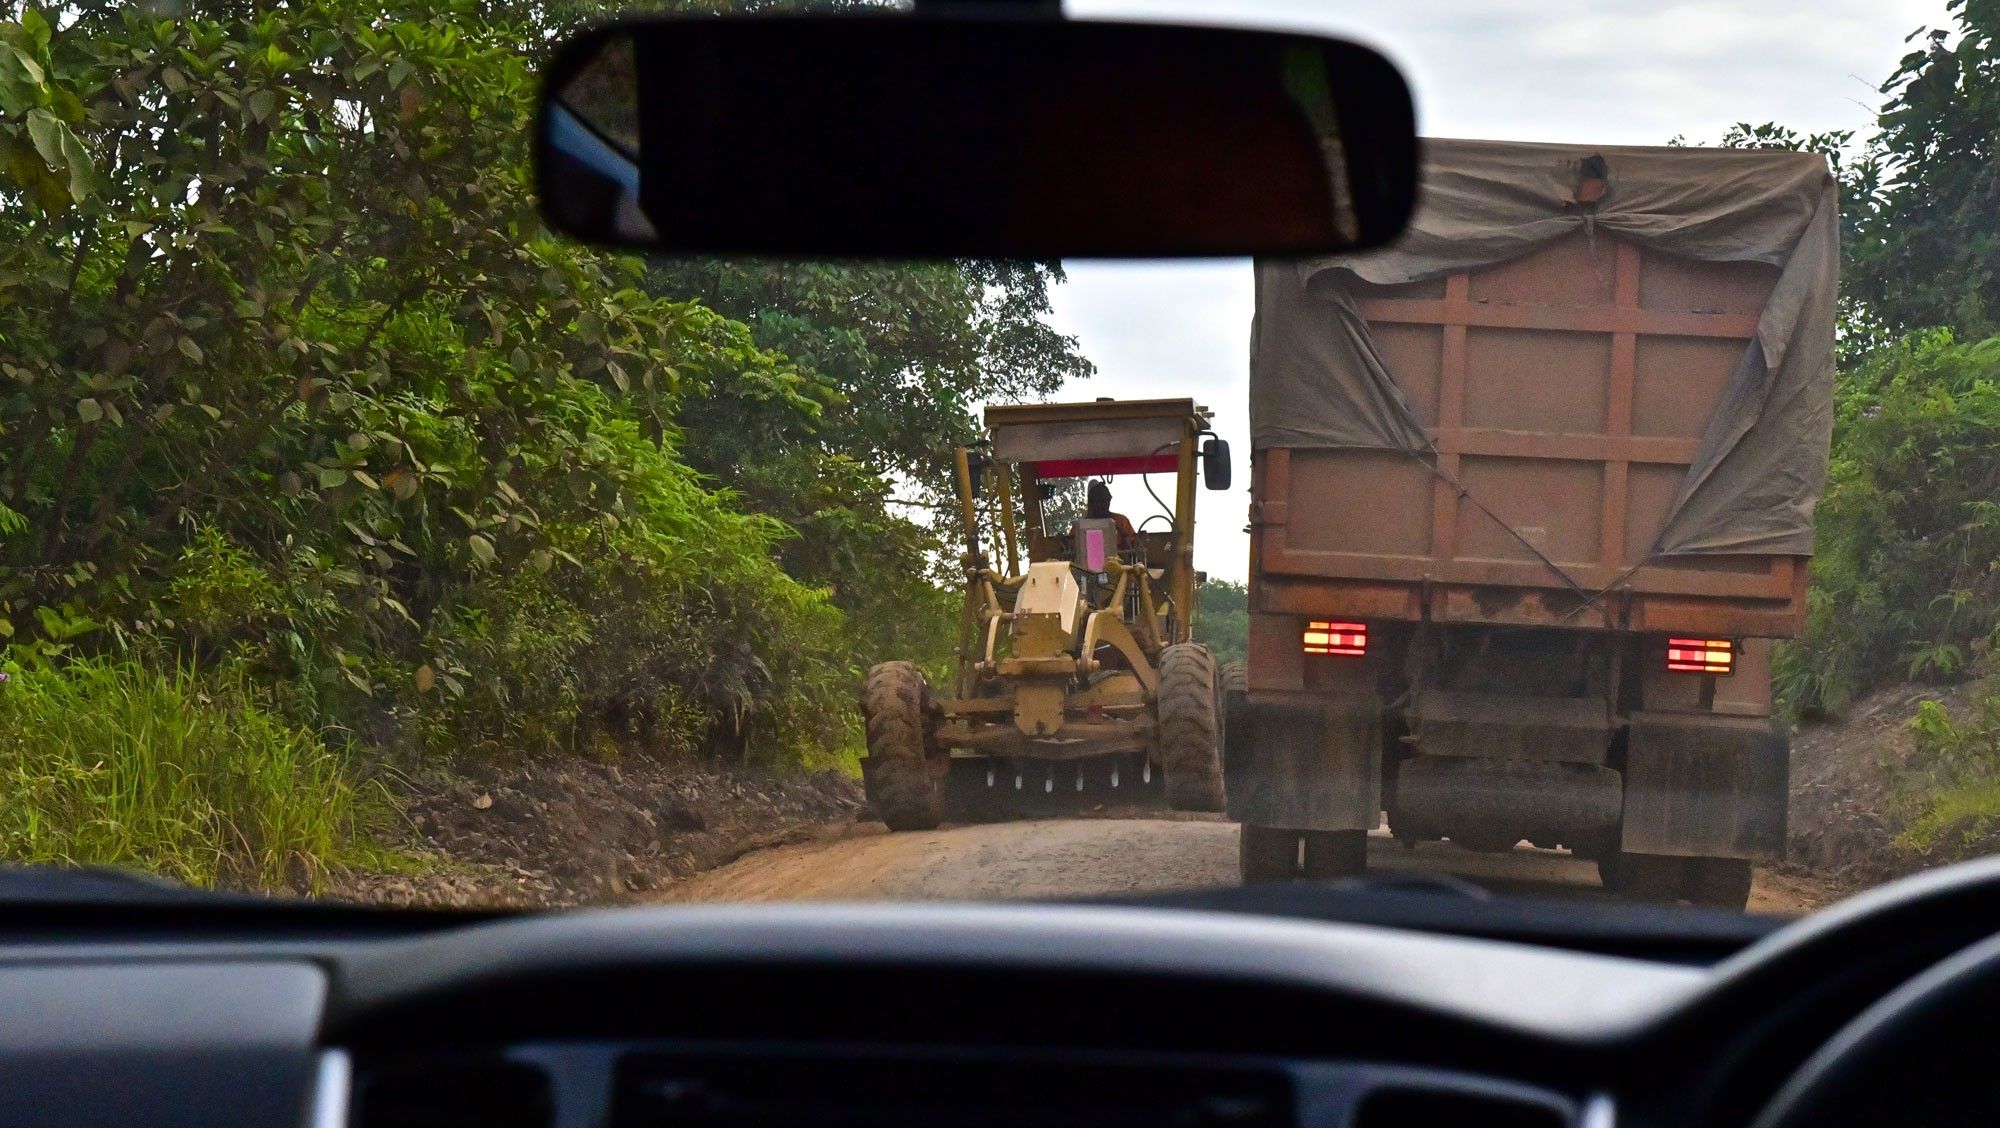 View from car windshield of road with truck and tractor